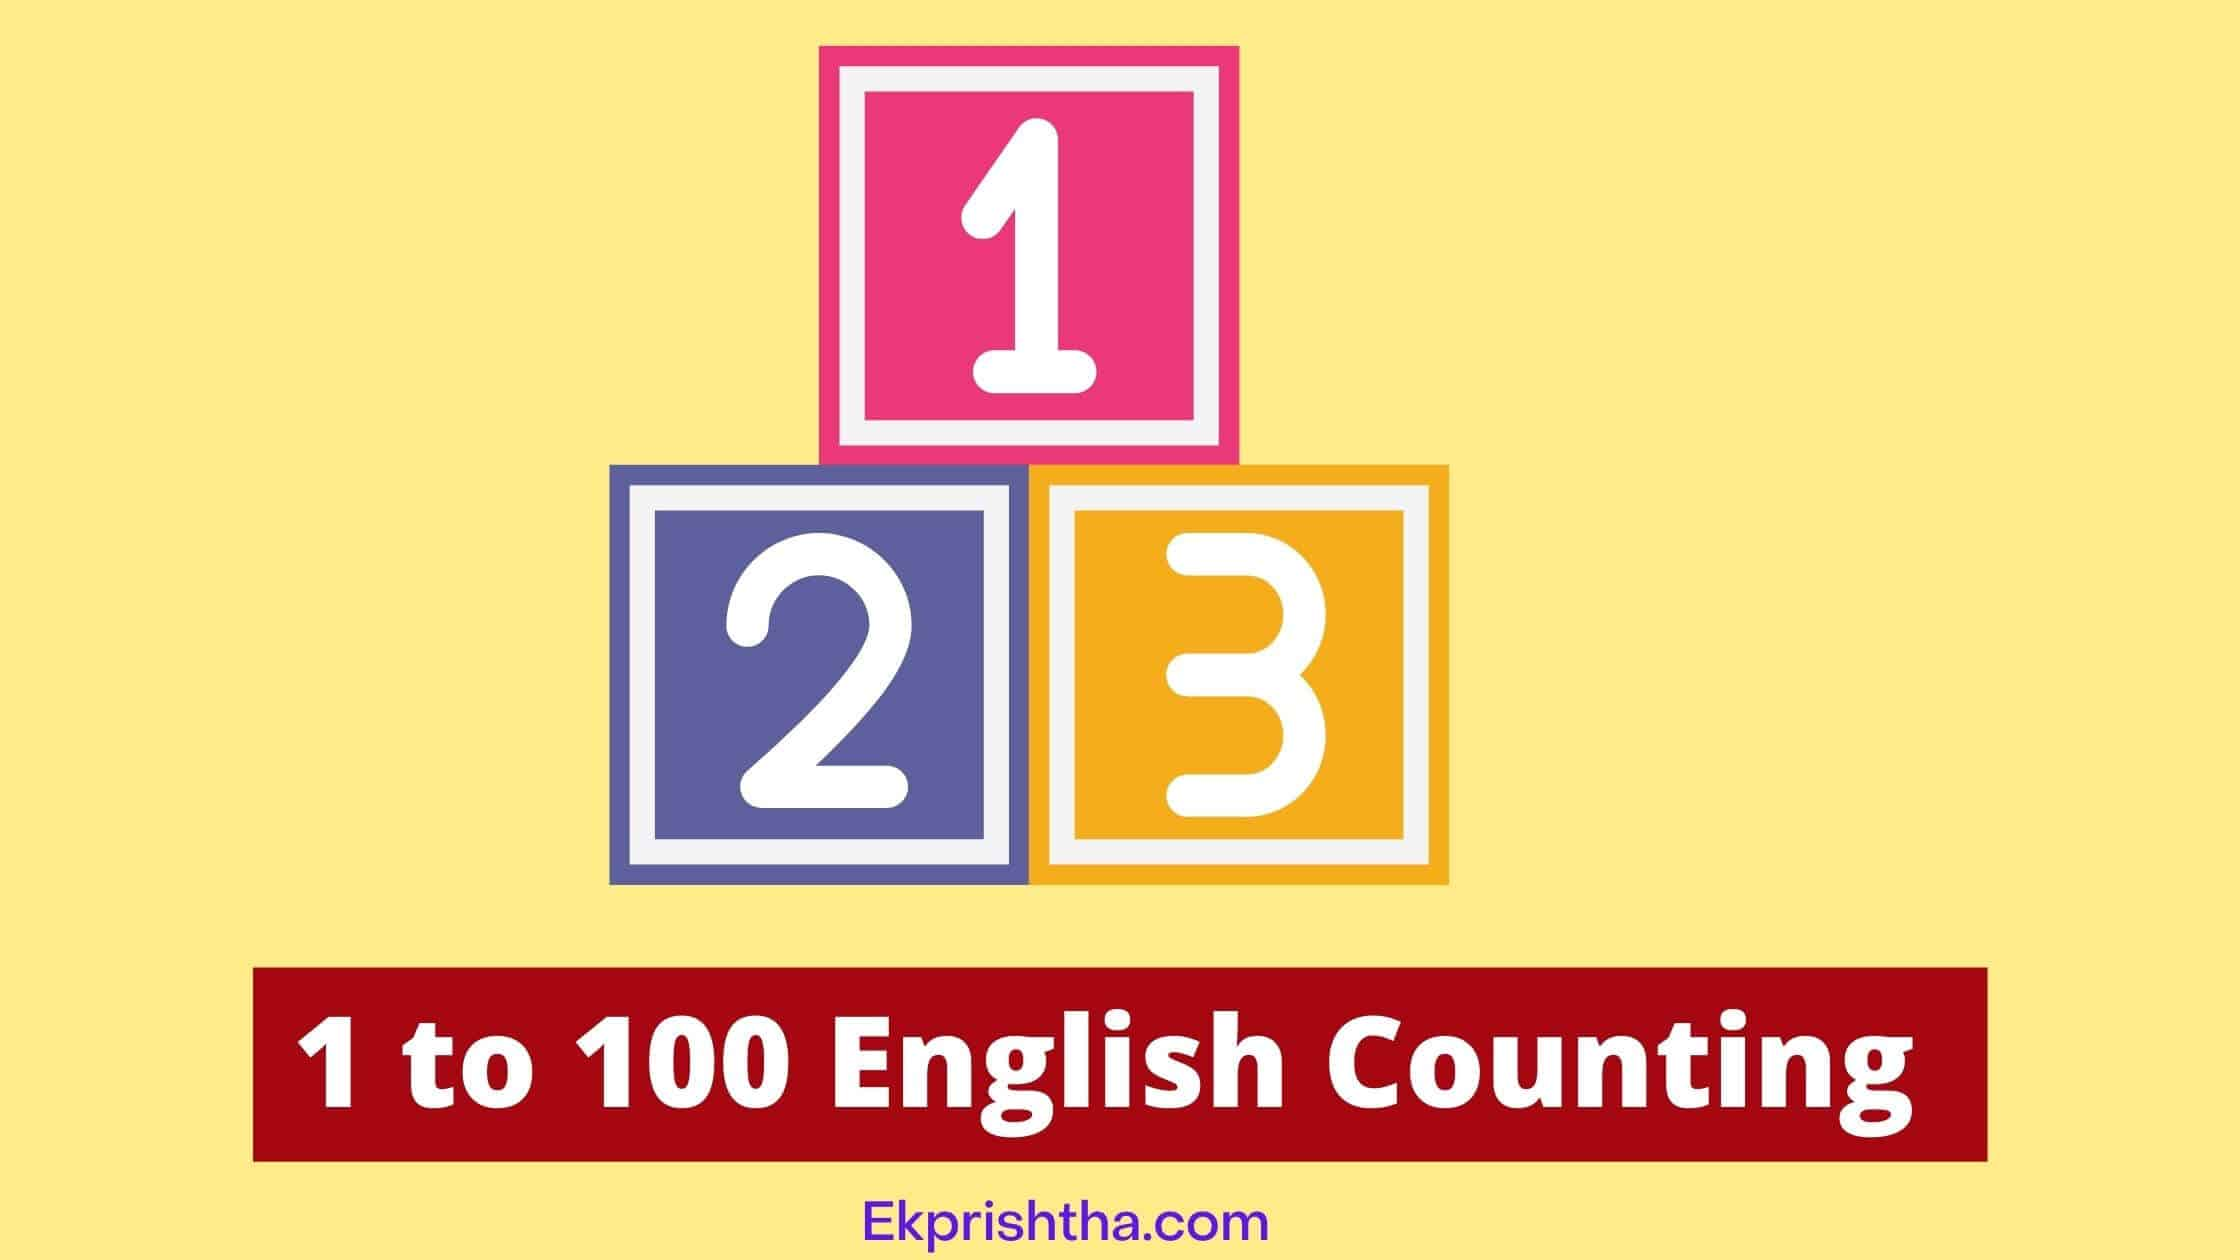 1 to 100 English Counting